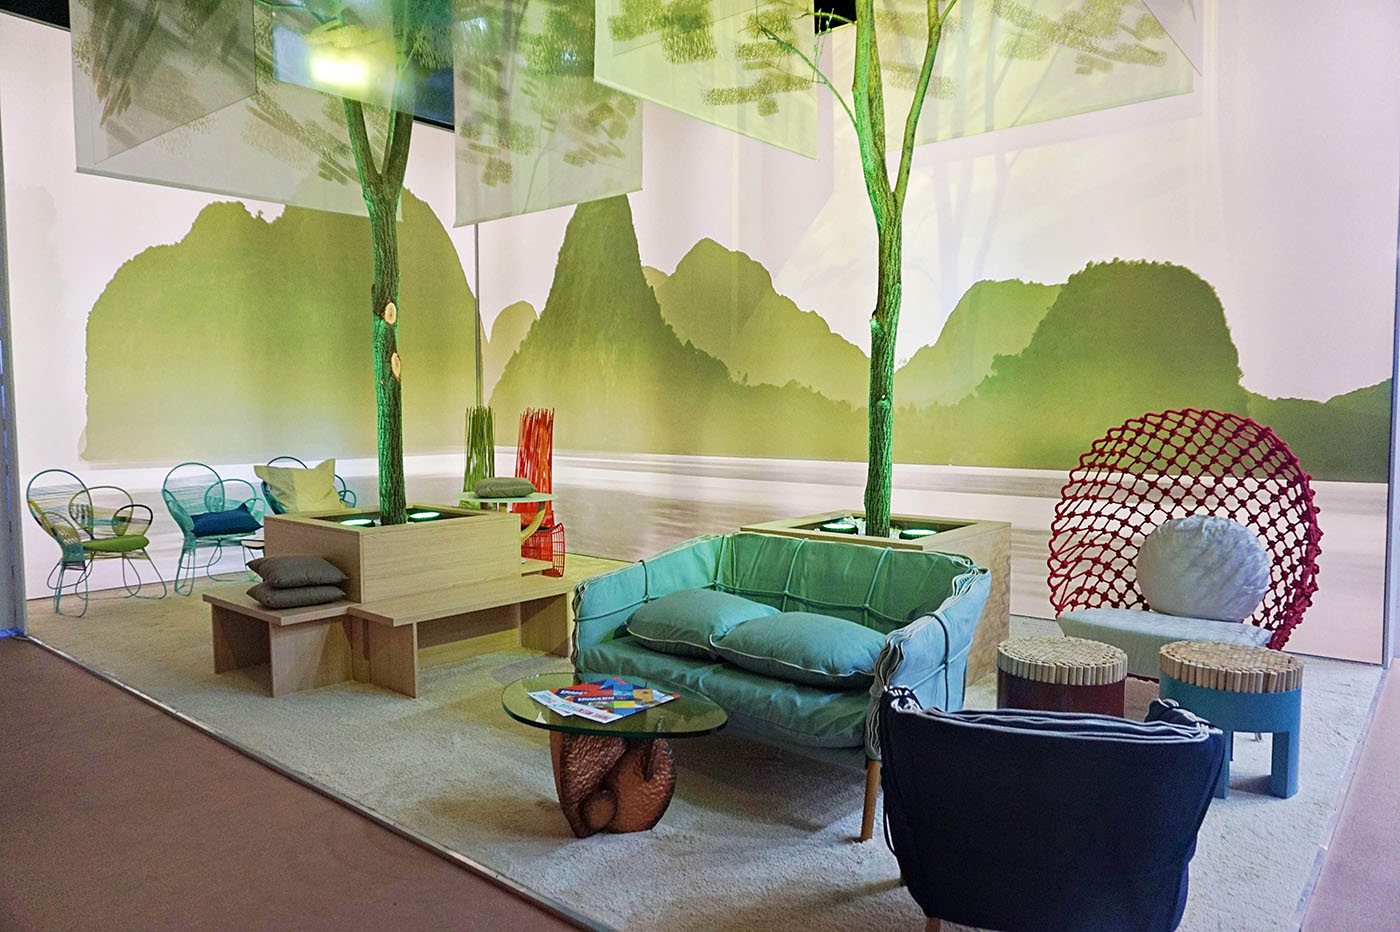 DESIGN. The Philippine furniture by Kenneth Cobonpue are also part of the booth during the trade fair.